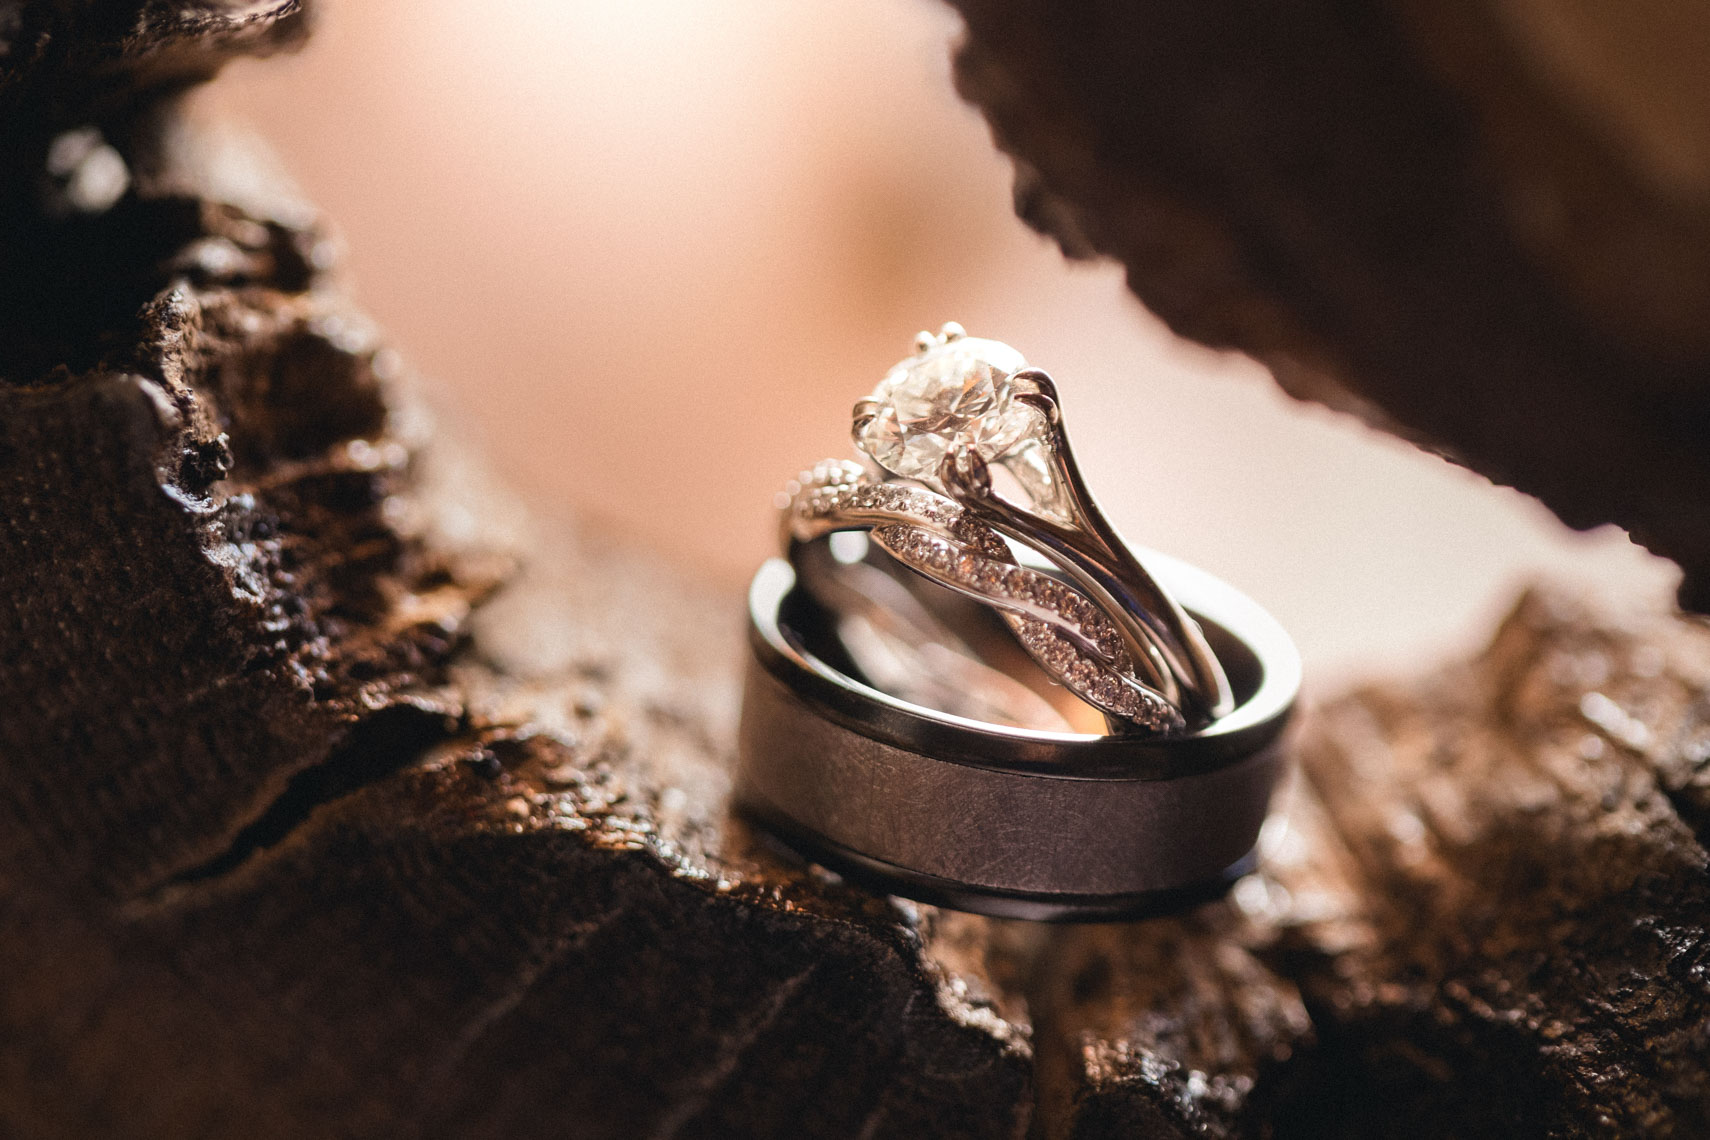 Wedding ring detail shown by whistler blackcomb photographer